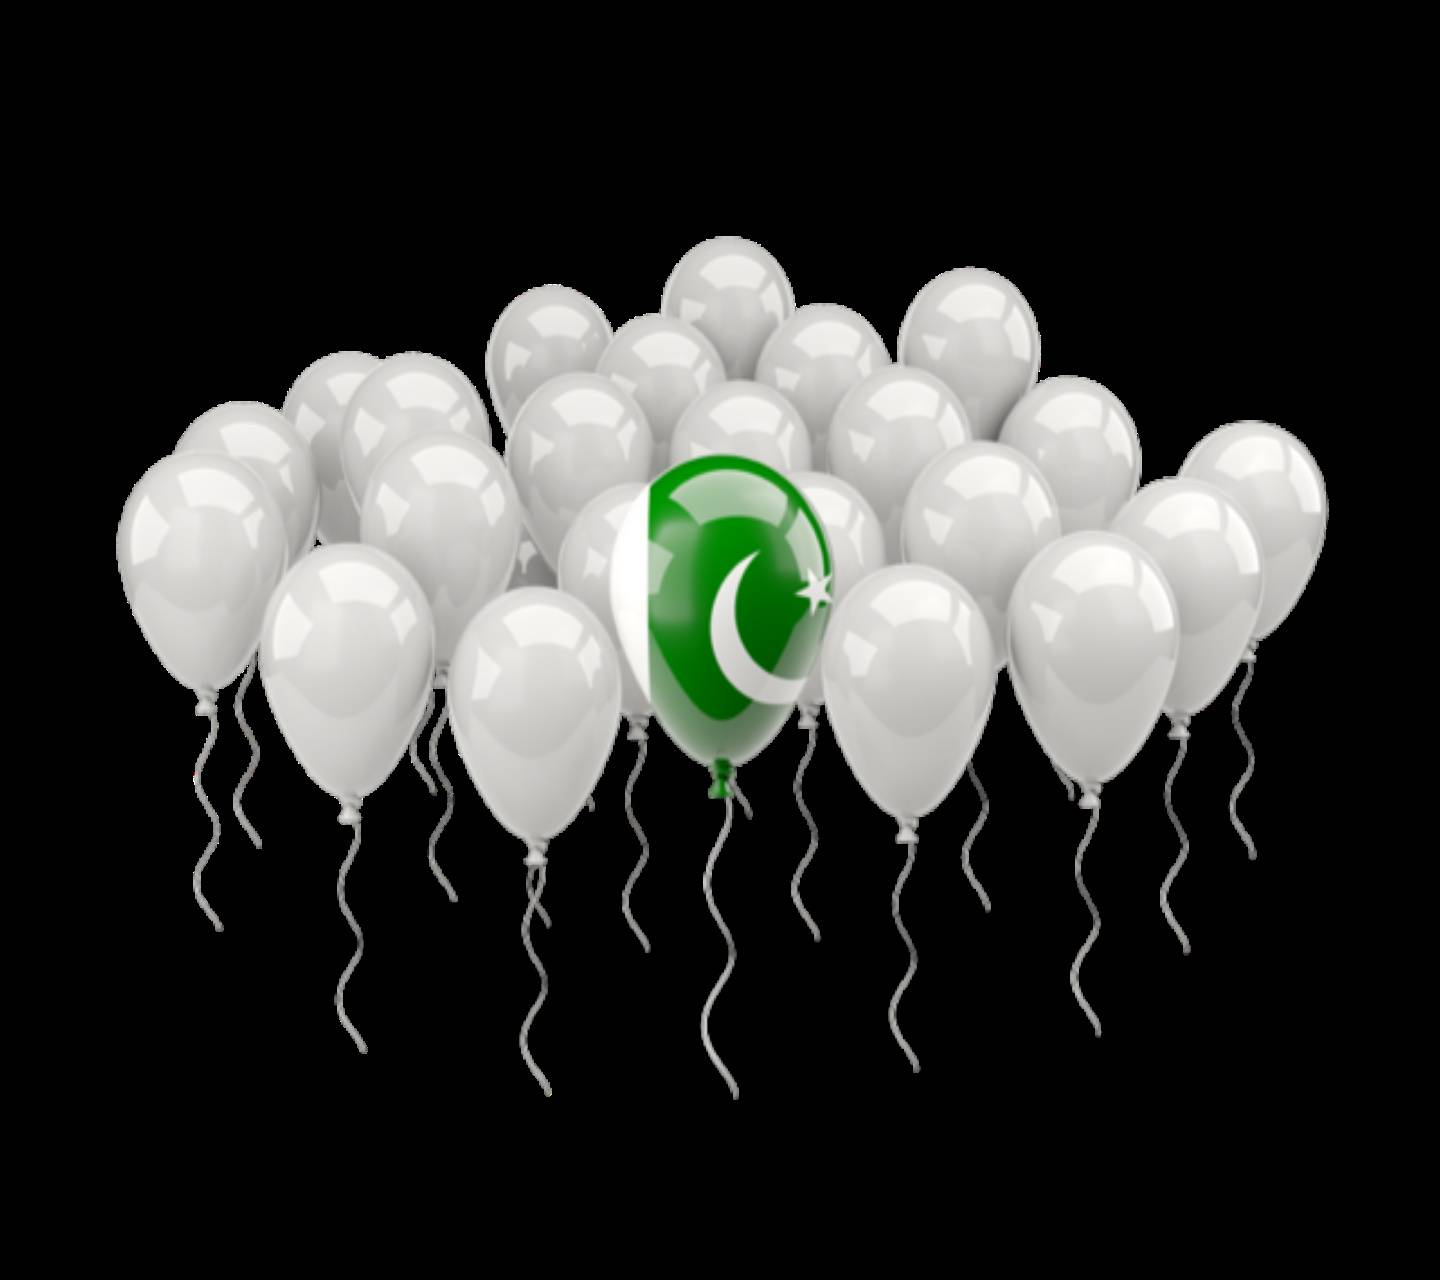 Ballons love pakista